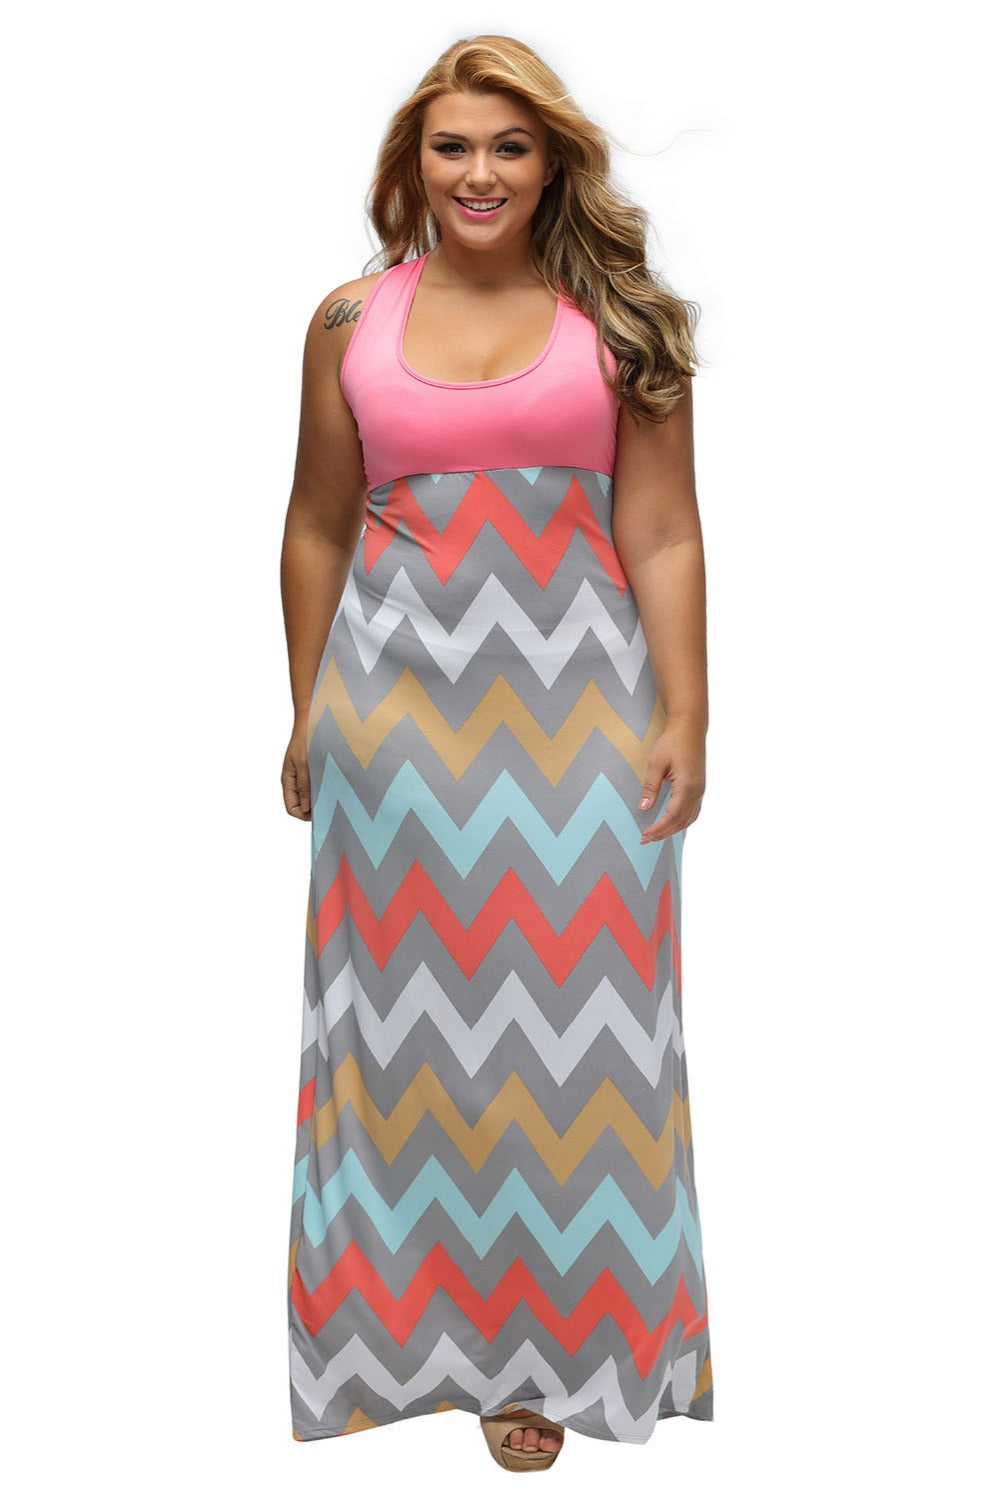 Plus Jersey Zigzag Print Maxi Dress - Casual Sleeveless Top Maxi Dress Dresses - Woven Trends Fashion Collection